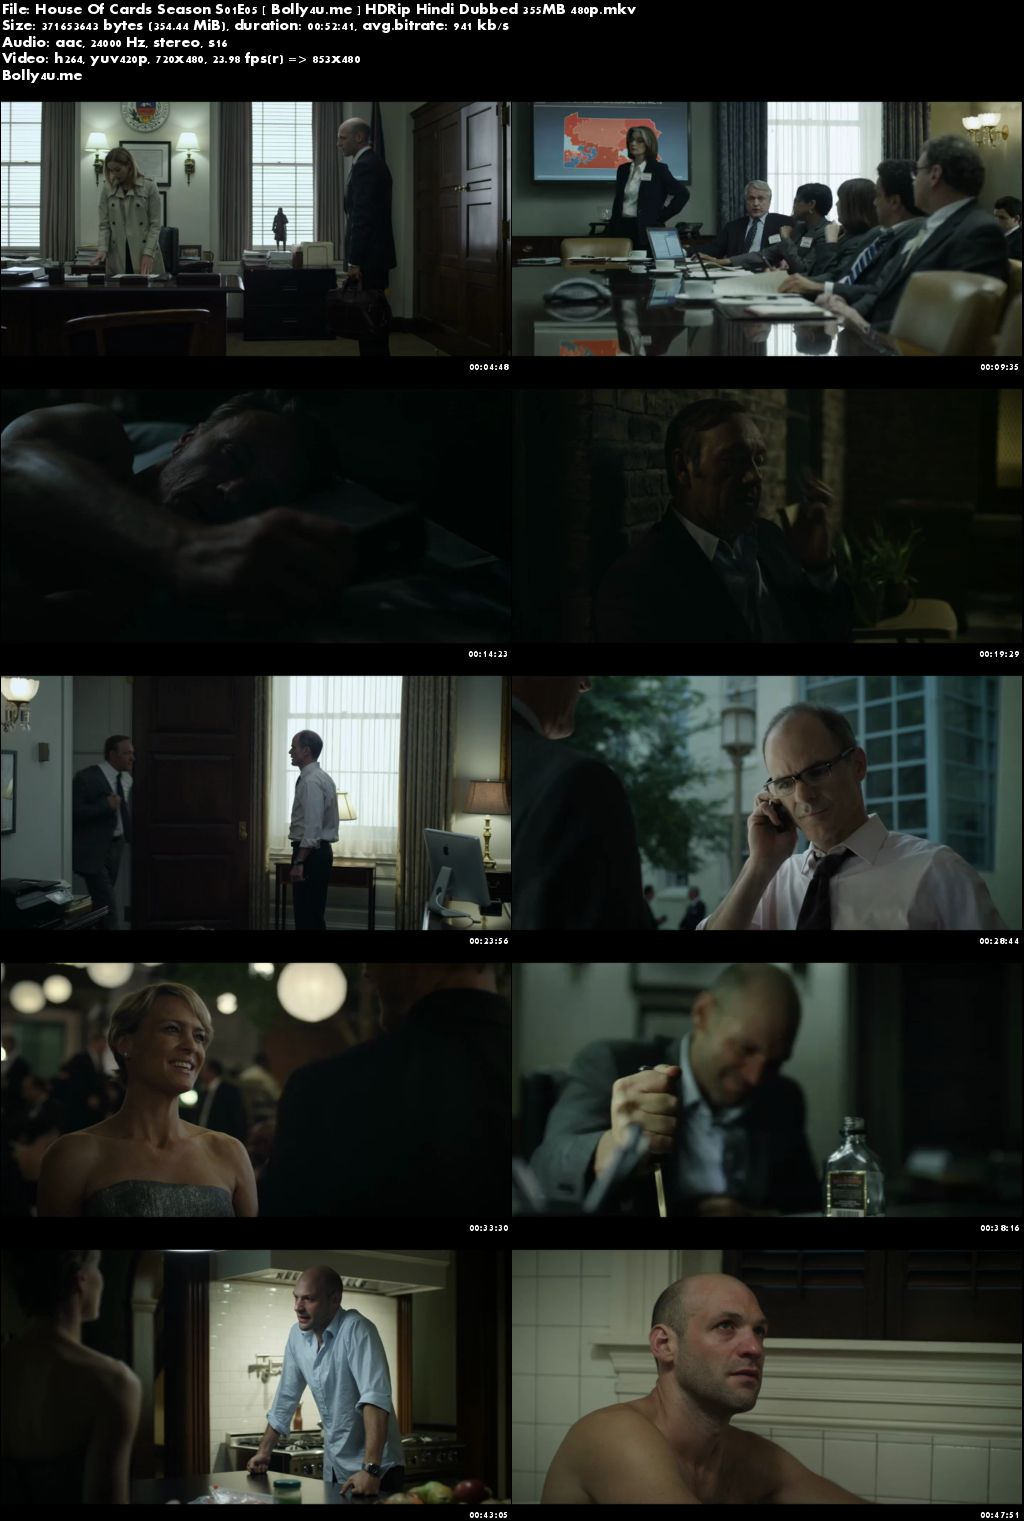 House Of Cards S01E05 HDRip 350MB Hindi Dubbed 480p Download